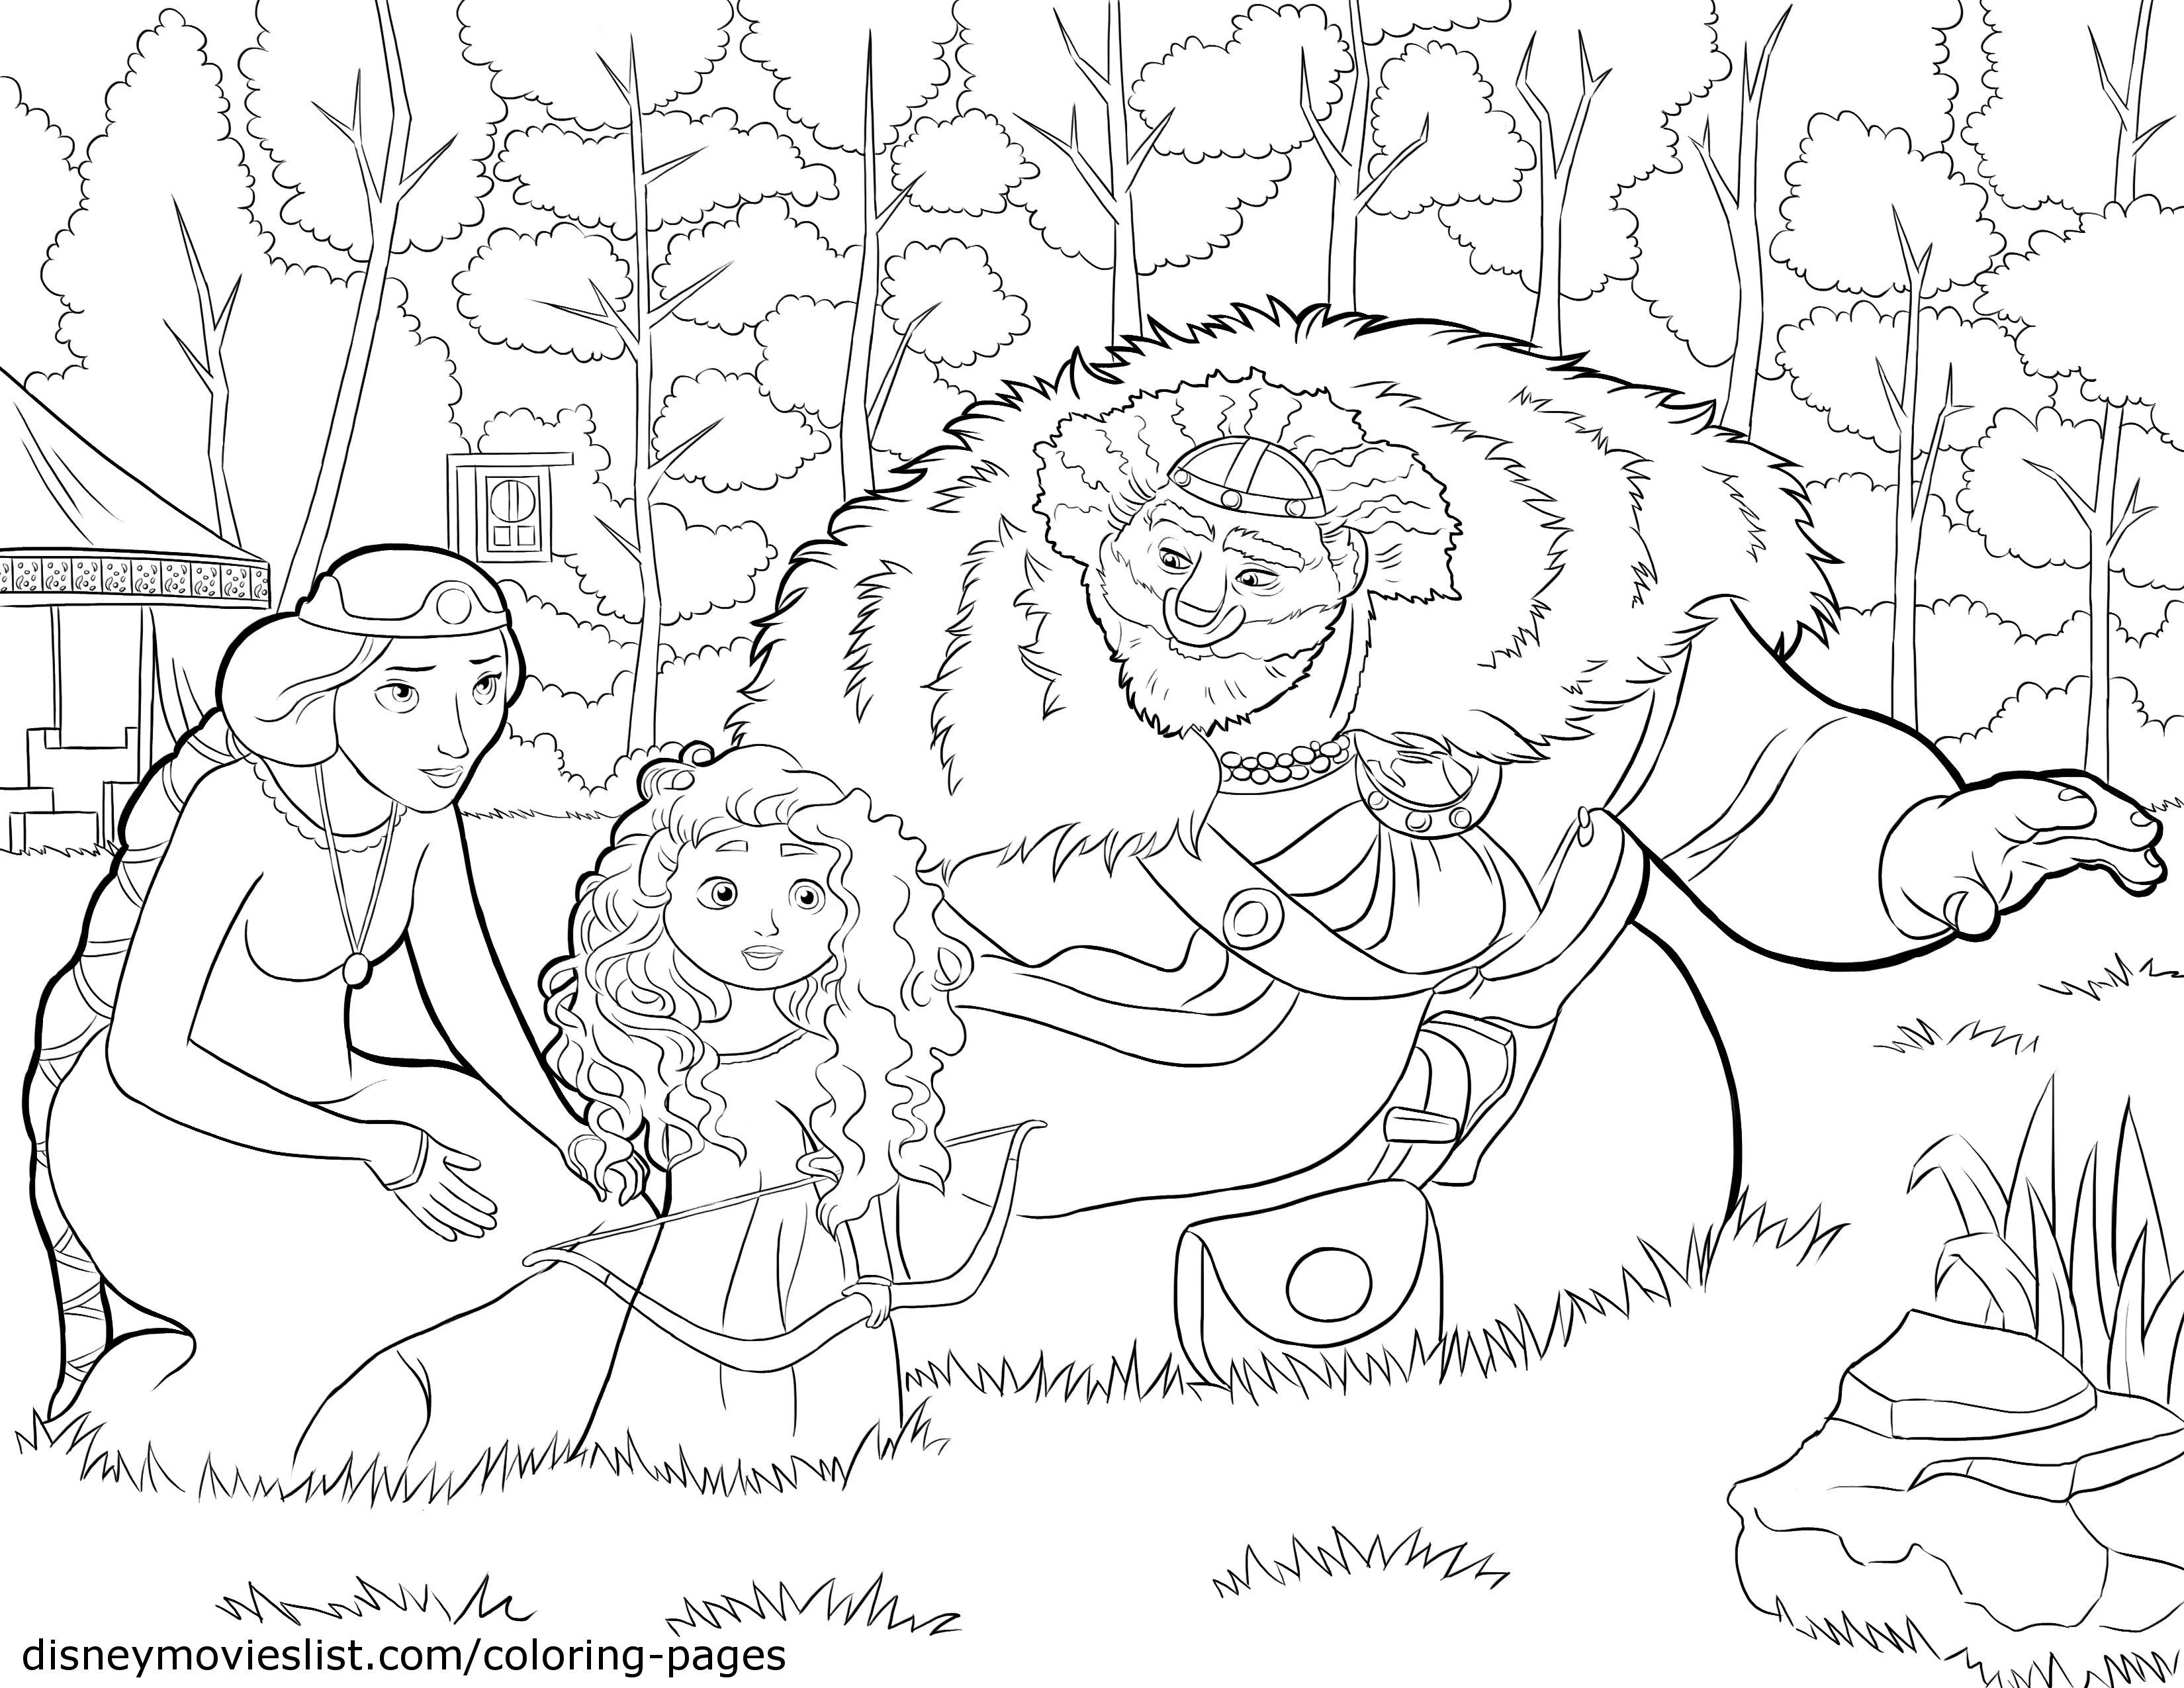 Pin By Lindee Weaver Ryan On 10embroidery Make Disney Coloring Pages Coloring Pages Disney Princess Coloring Pages